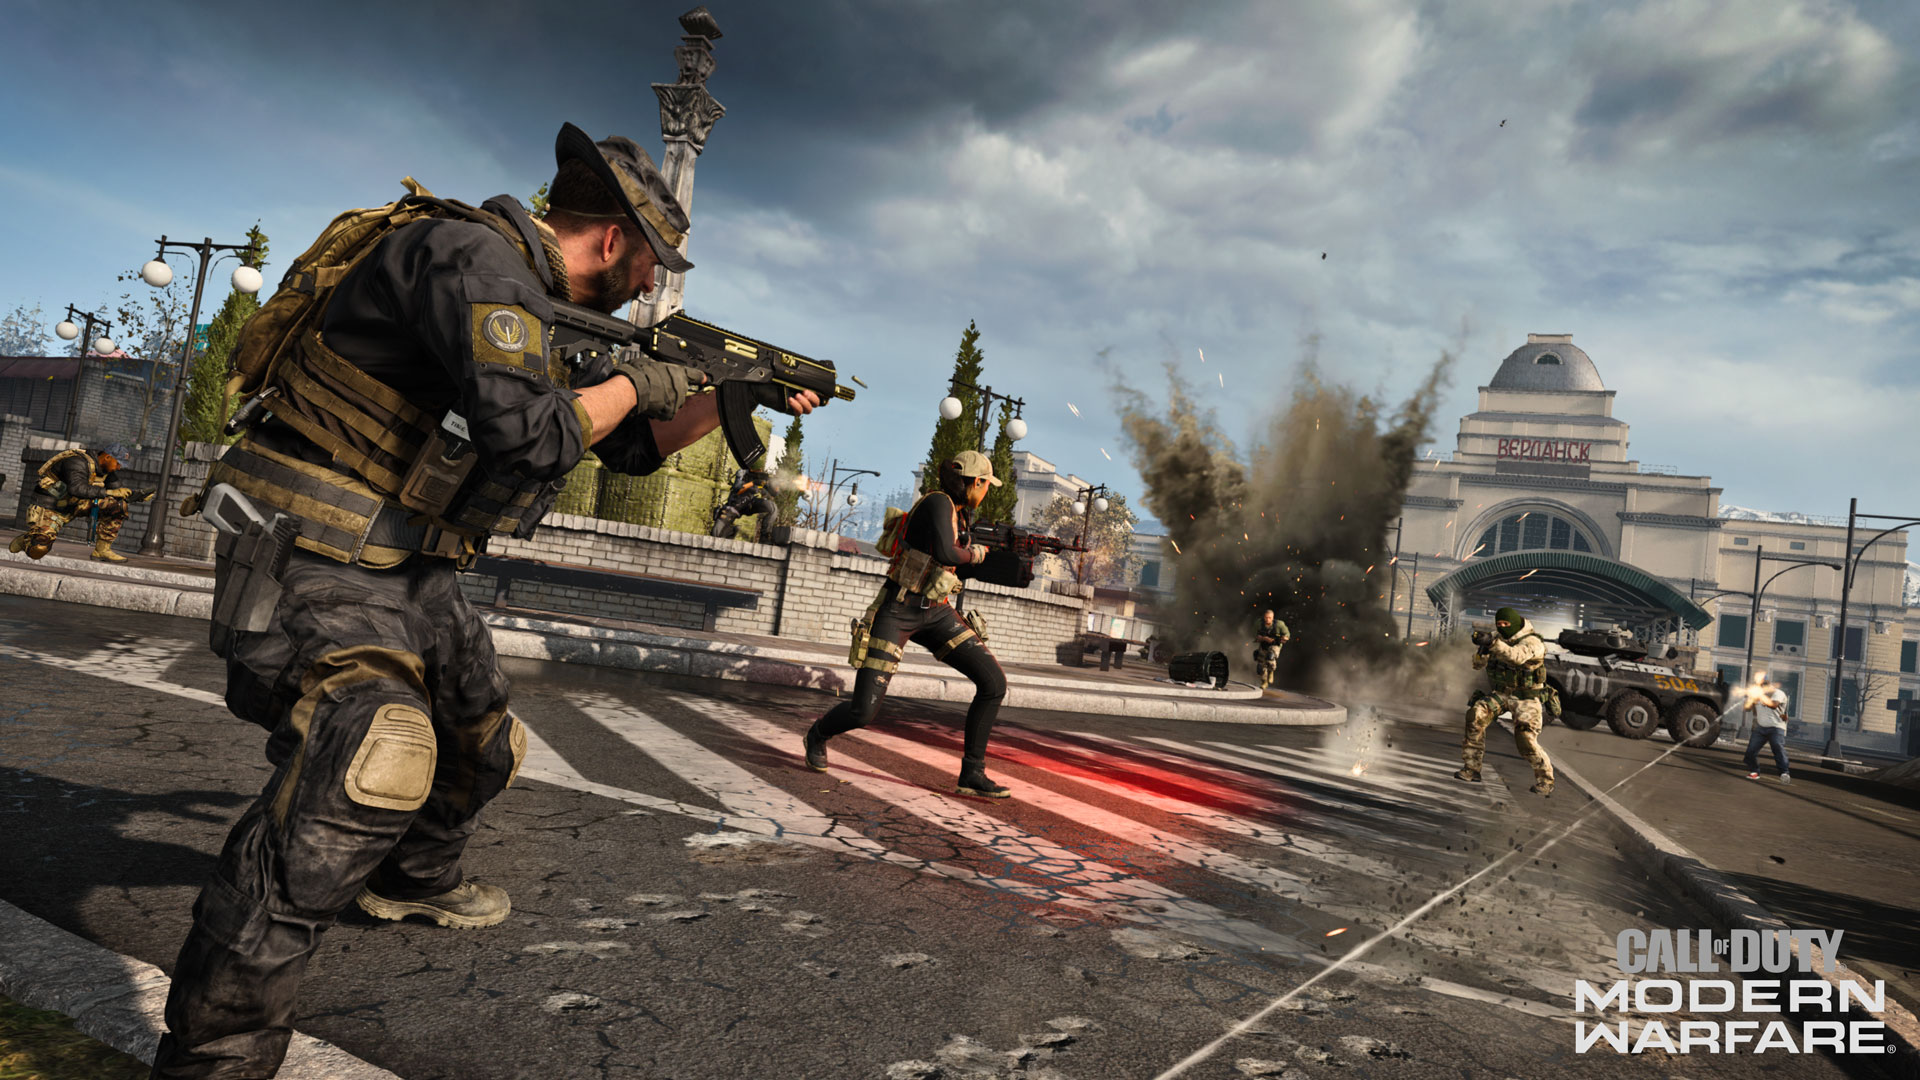 Call of Duty's latest patch nerfs the Bruen